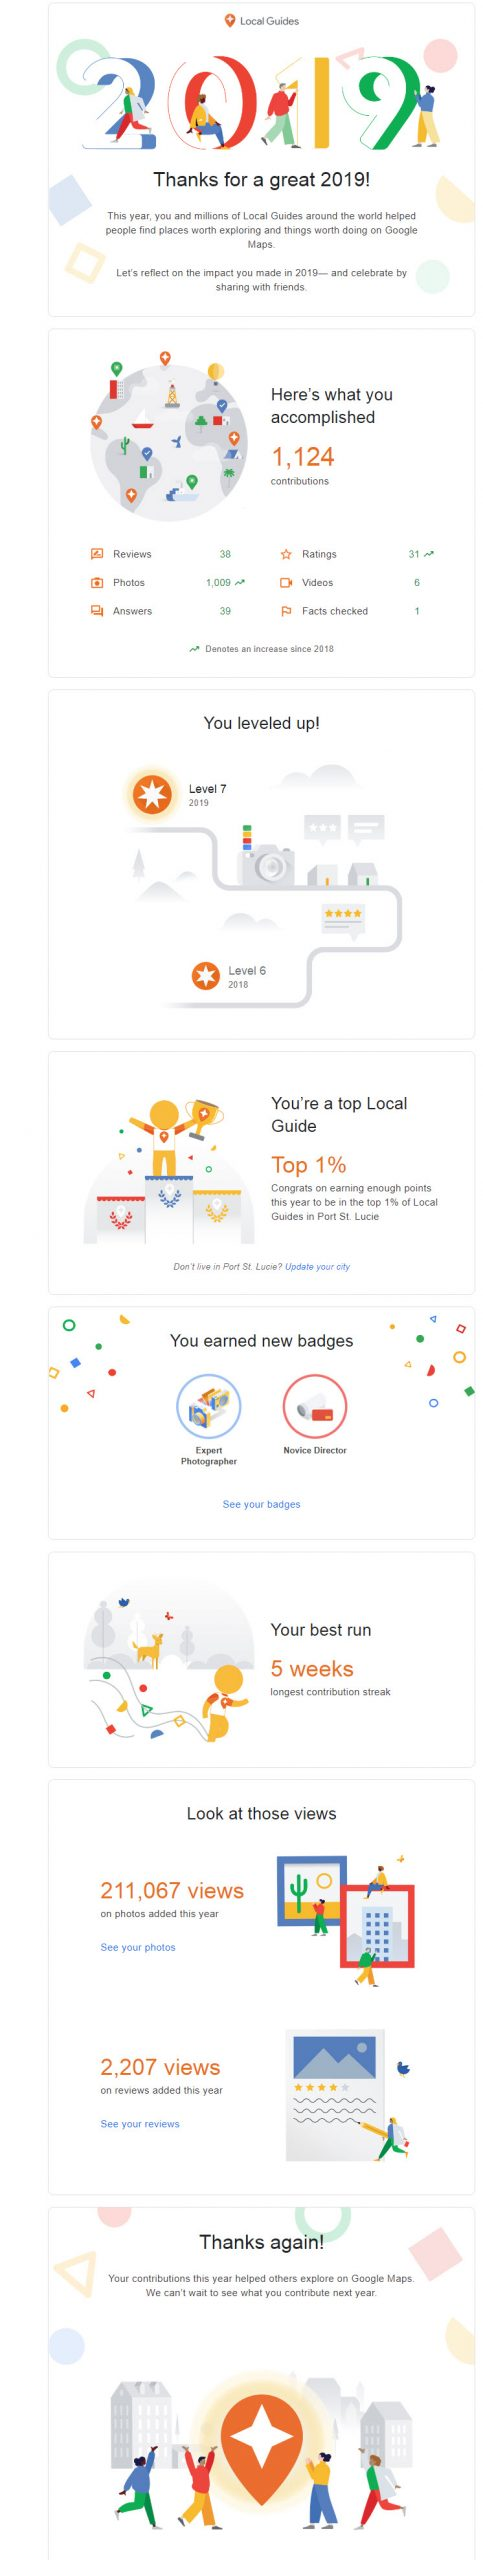 Orange Snowman Local Guide impact on Google Maps in 2019